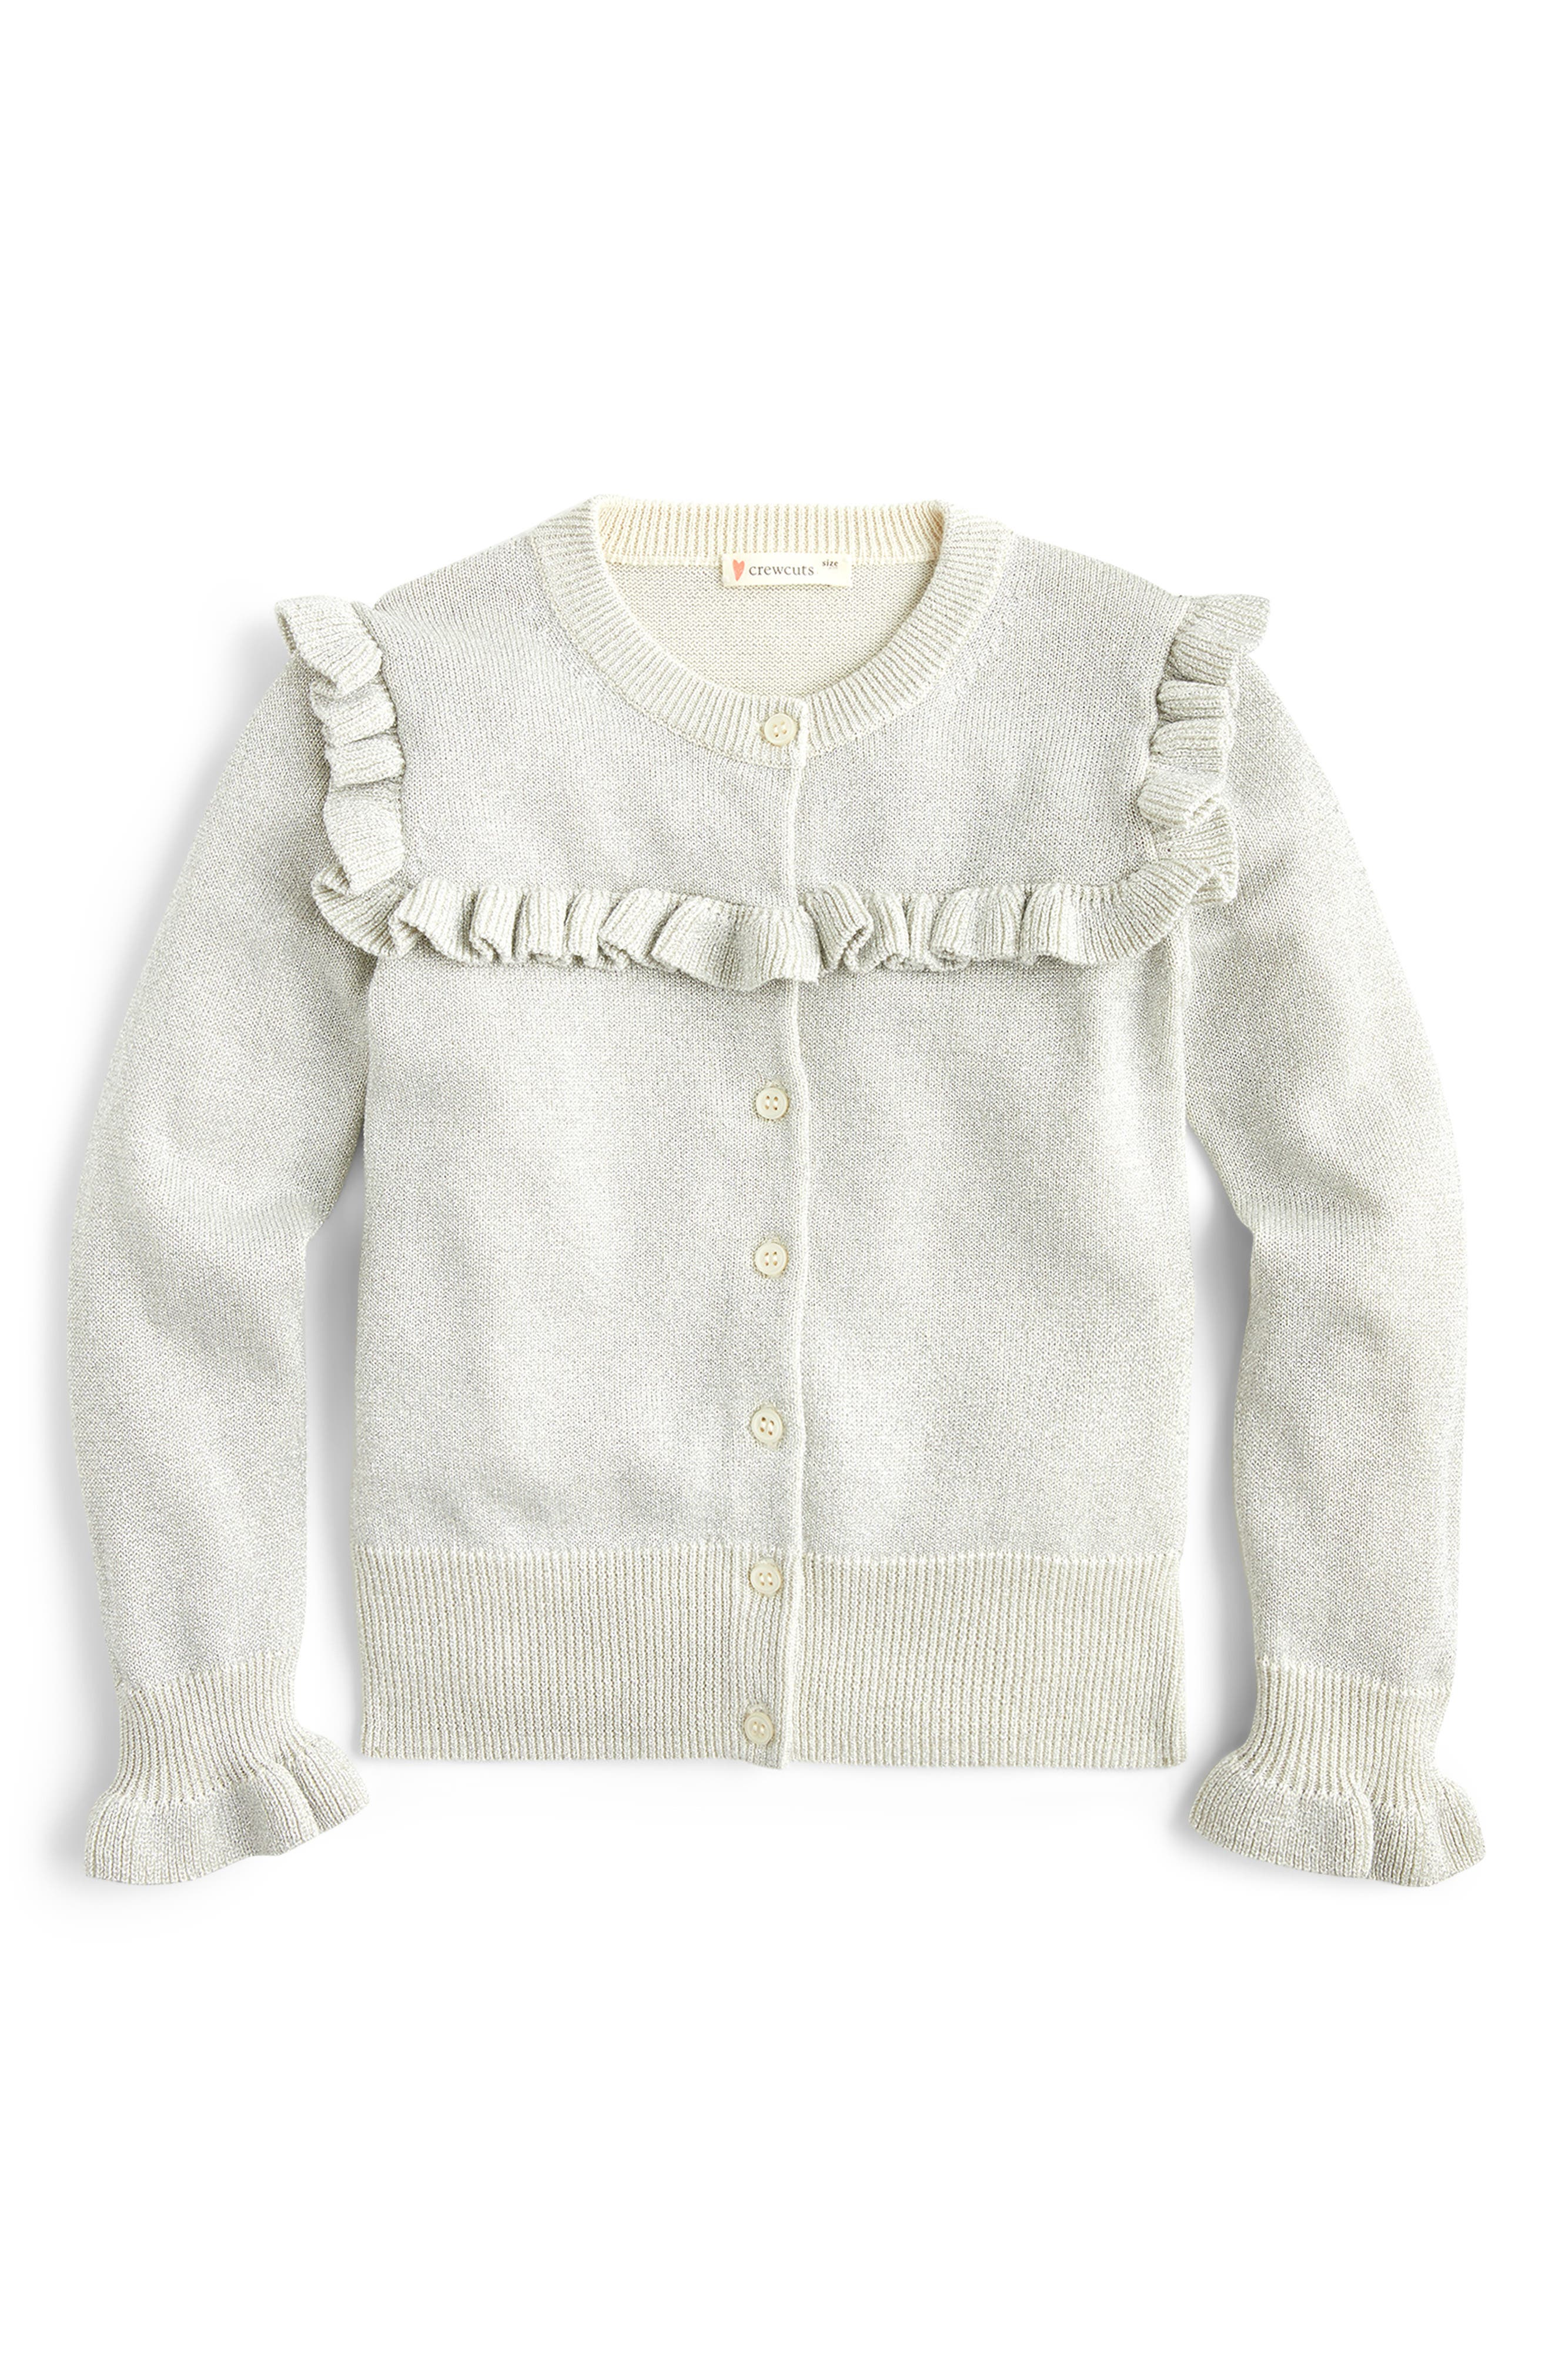 Toddler Girls Crewcuts By Jcrew Sparkly Ruffle Trimmed Cardigan Sweater Size 2T  Ivory